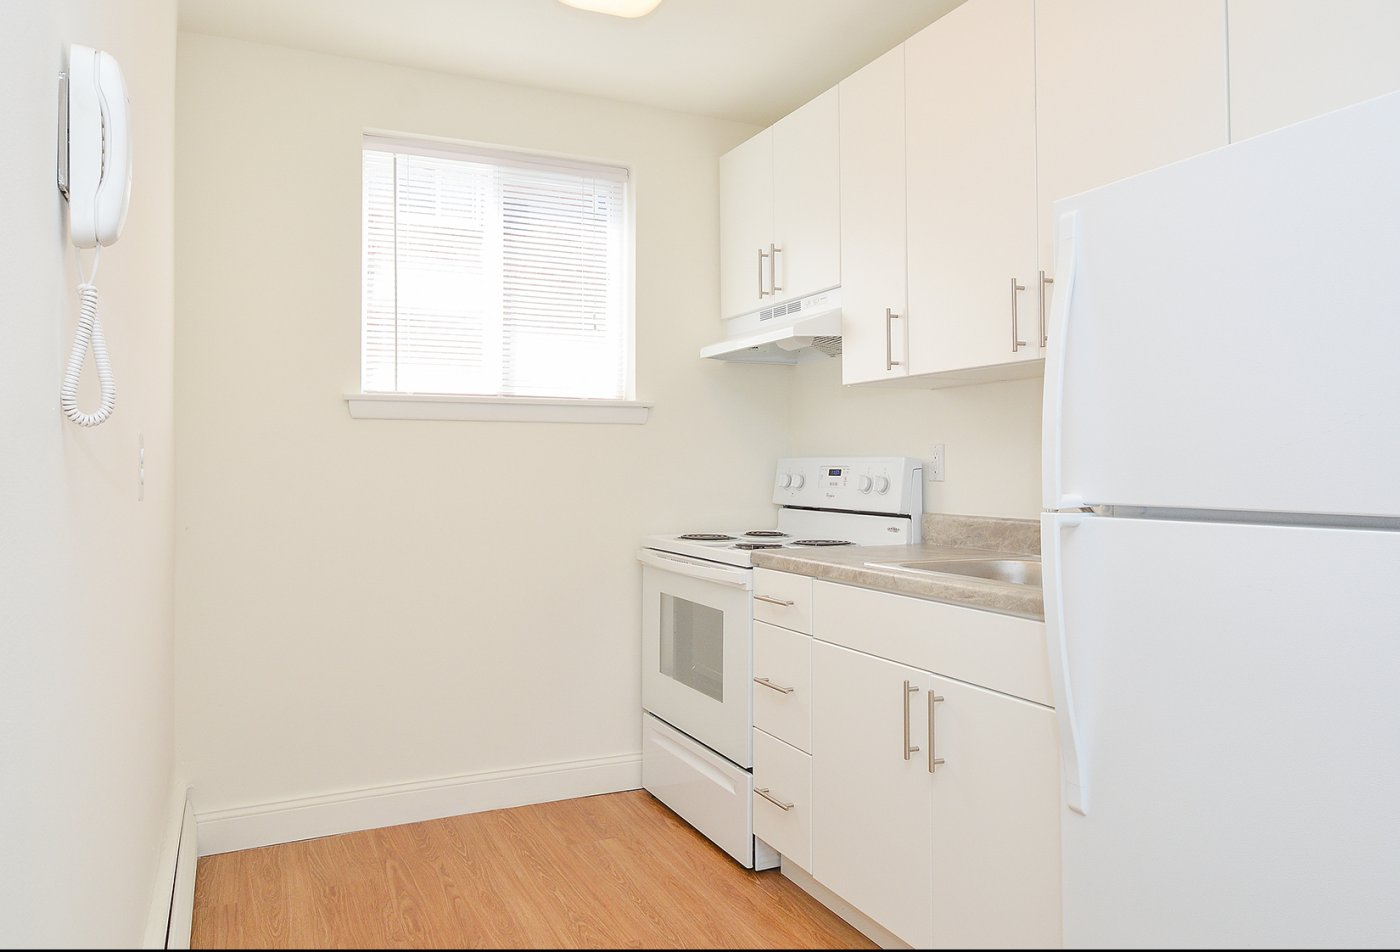 State-of-the-Art Kitchen   Media PA Apartment Homes   Woodview Apartments